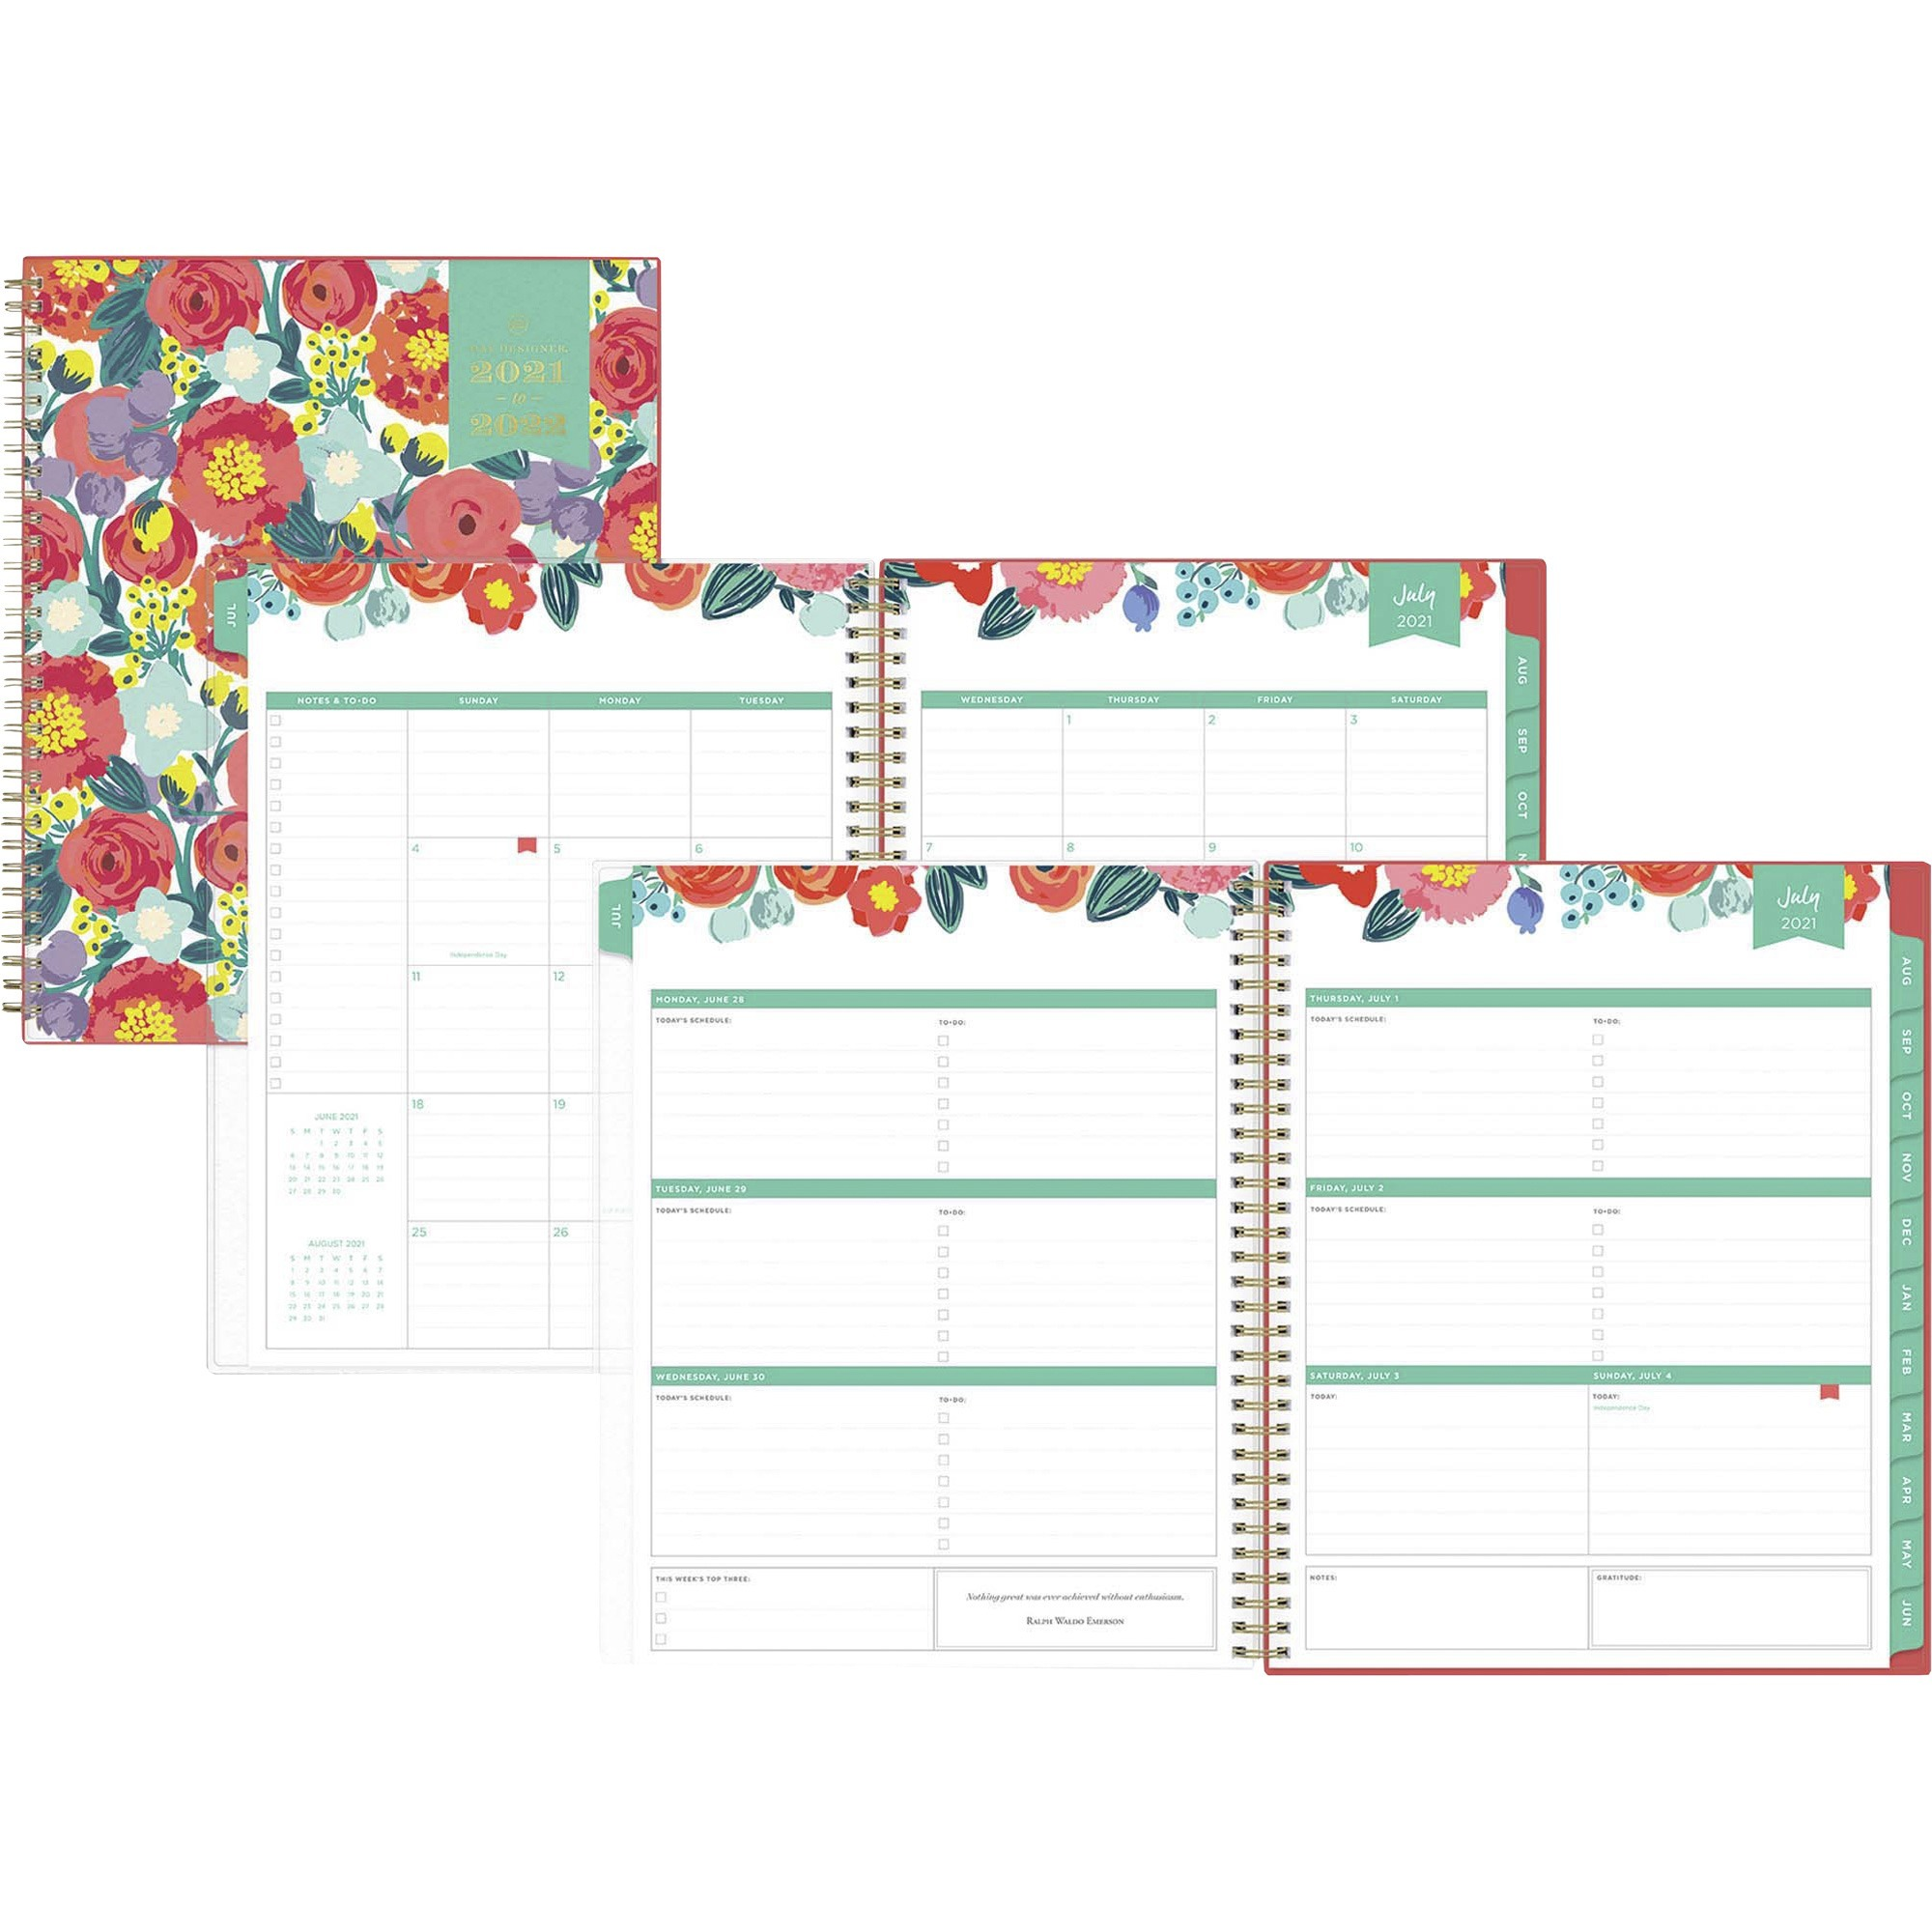 Day Designer Academic Planner - Academic - Monthly, Weekly - 1 Year - July 2021 till June 2022 - 1 Week, 1 Month Double Page Layout - White Sheet - Wire Bound - Multi - Paper - 8.5